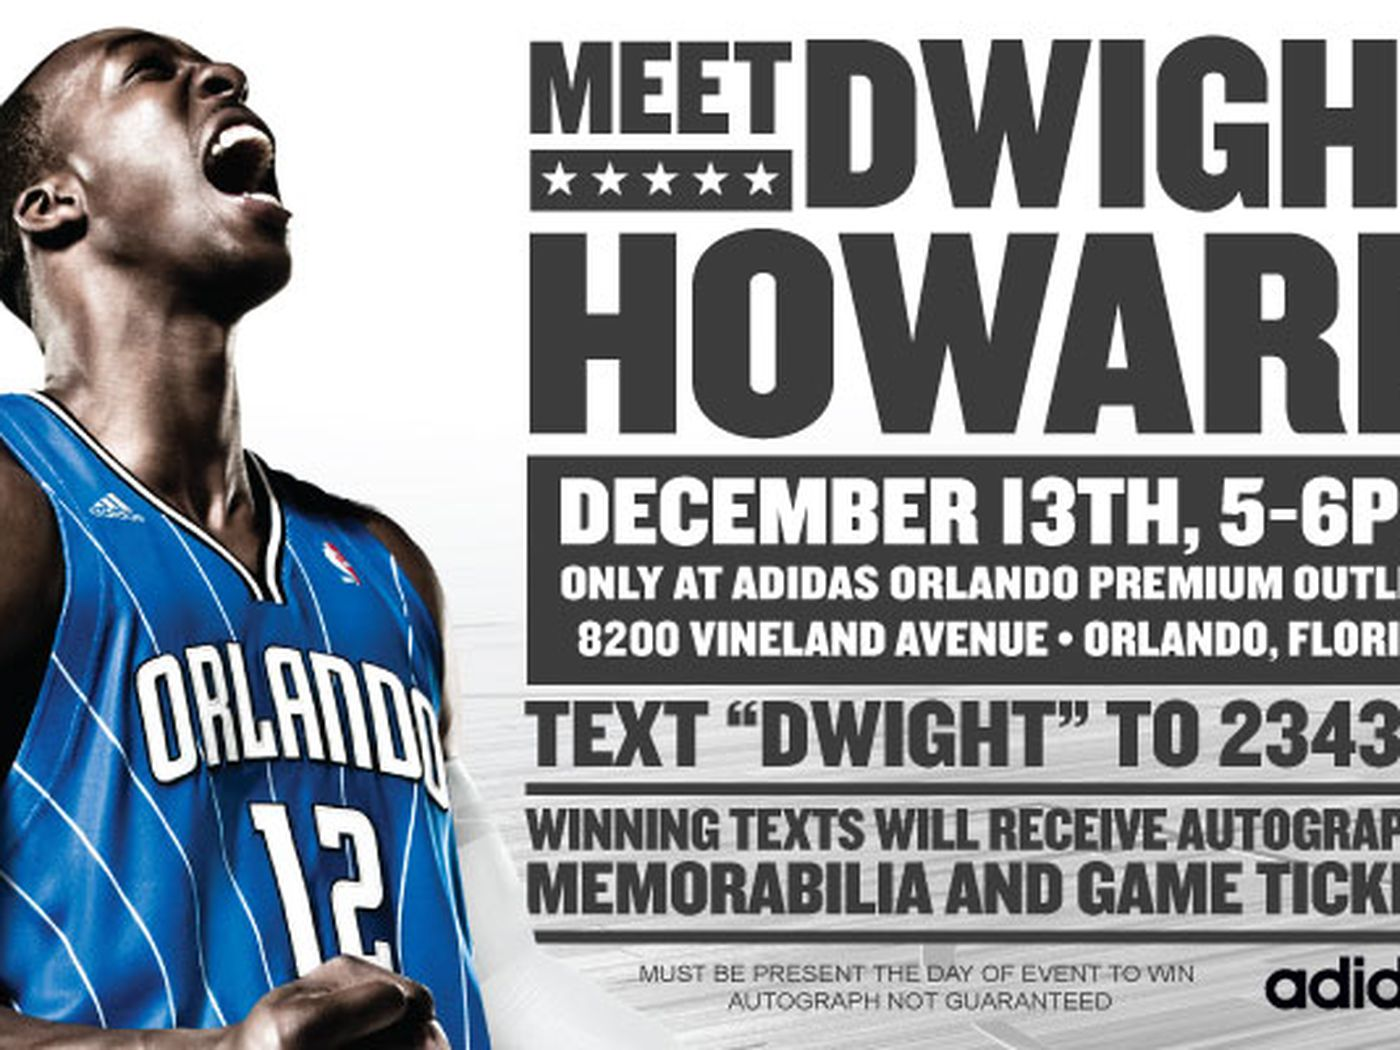 be6570afa8f2d Meet Dwight Howard at Adidas Outlet on December 13th - Orlando ...